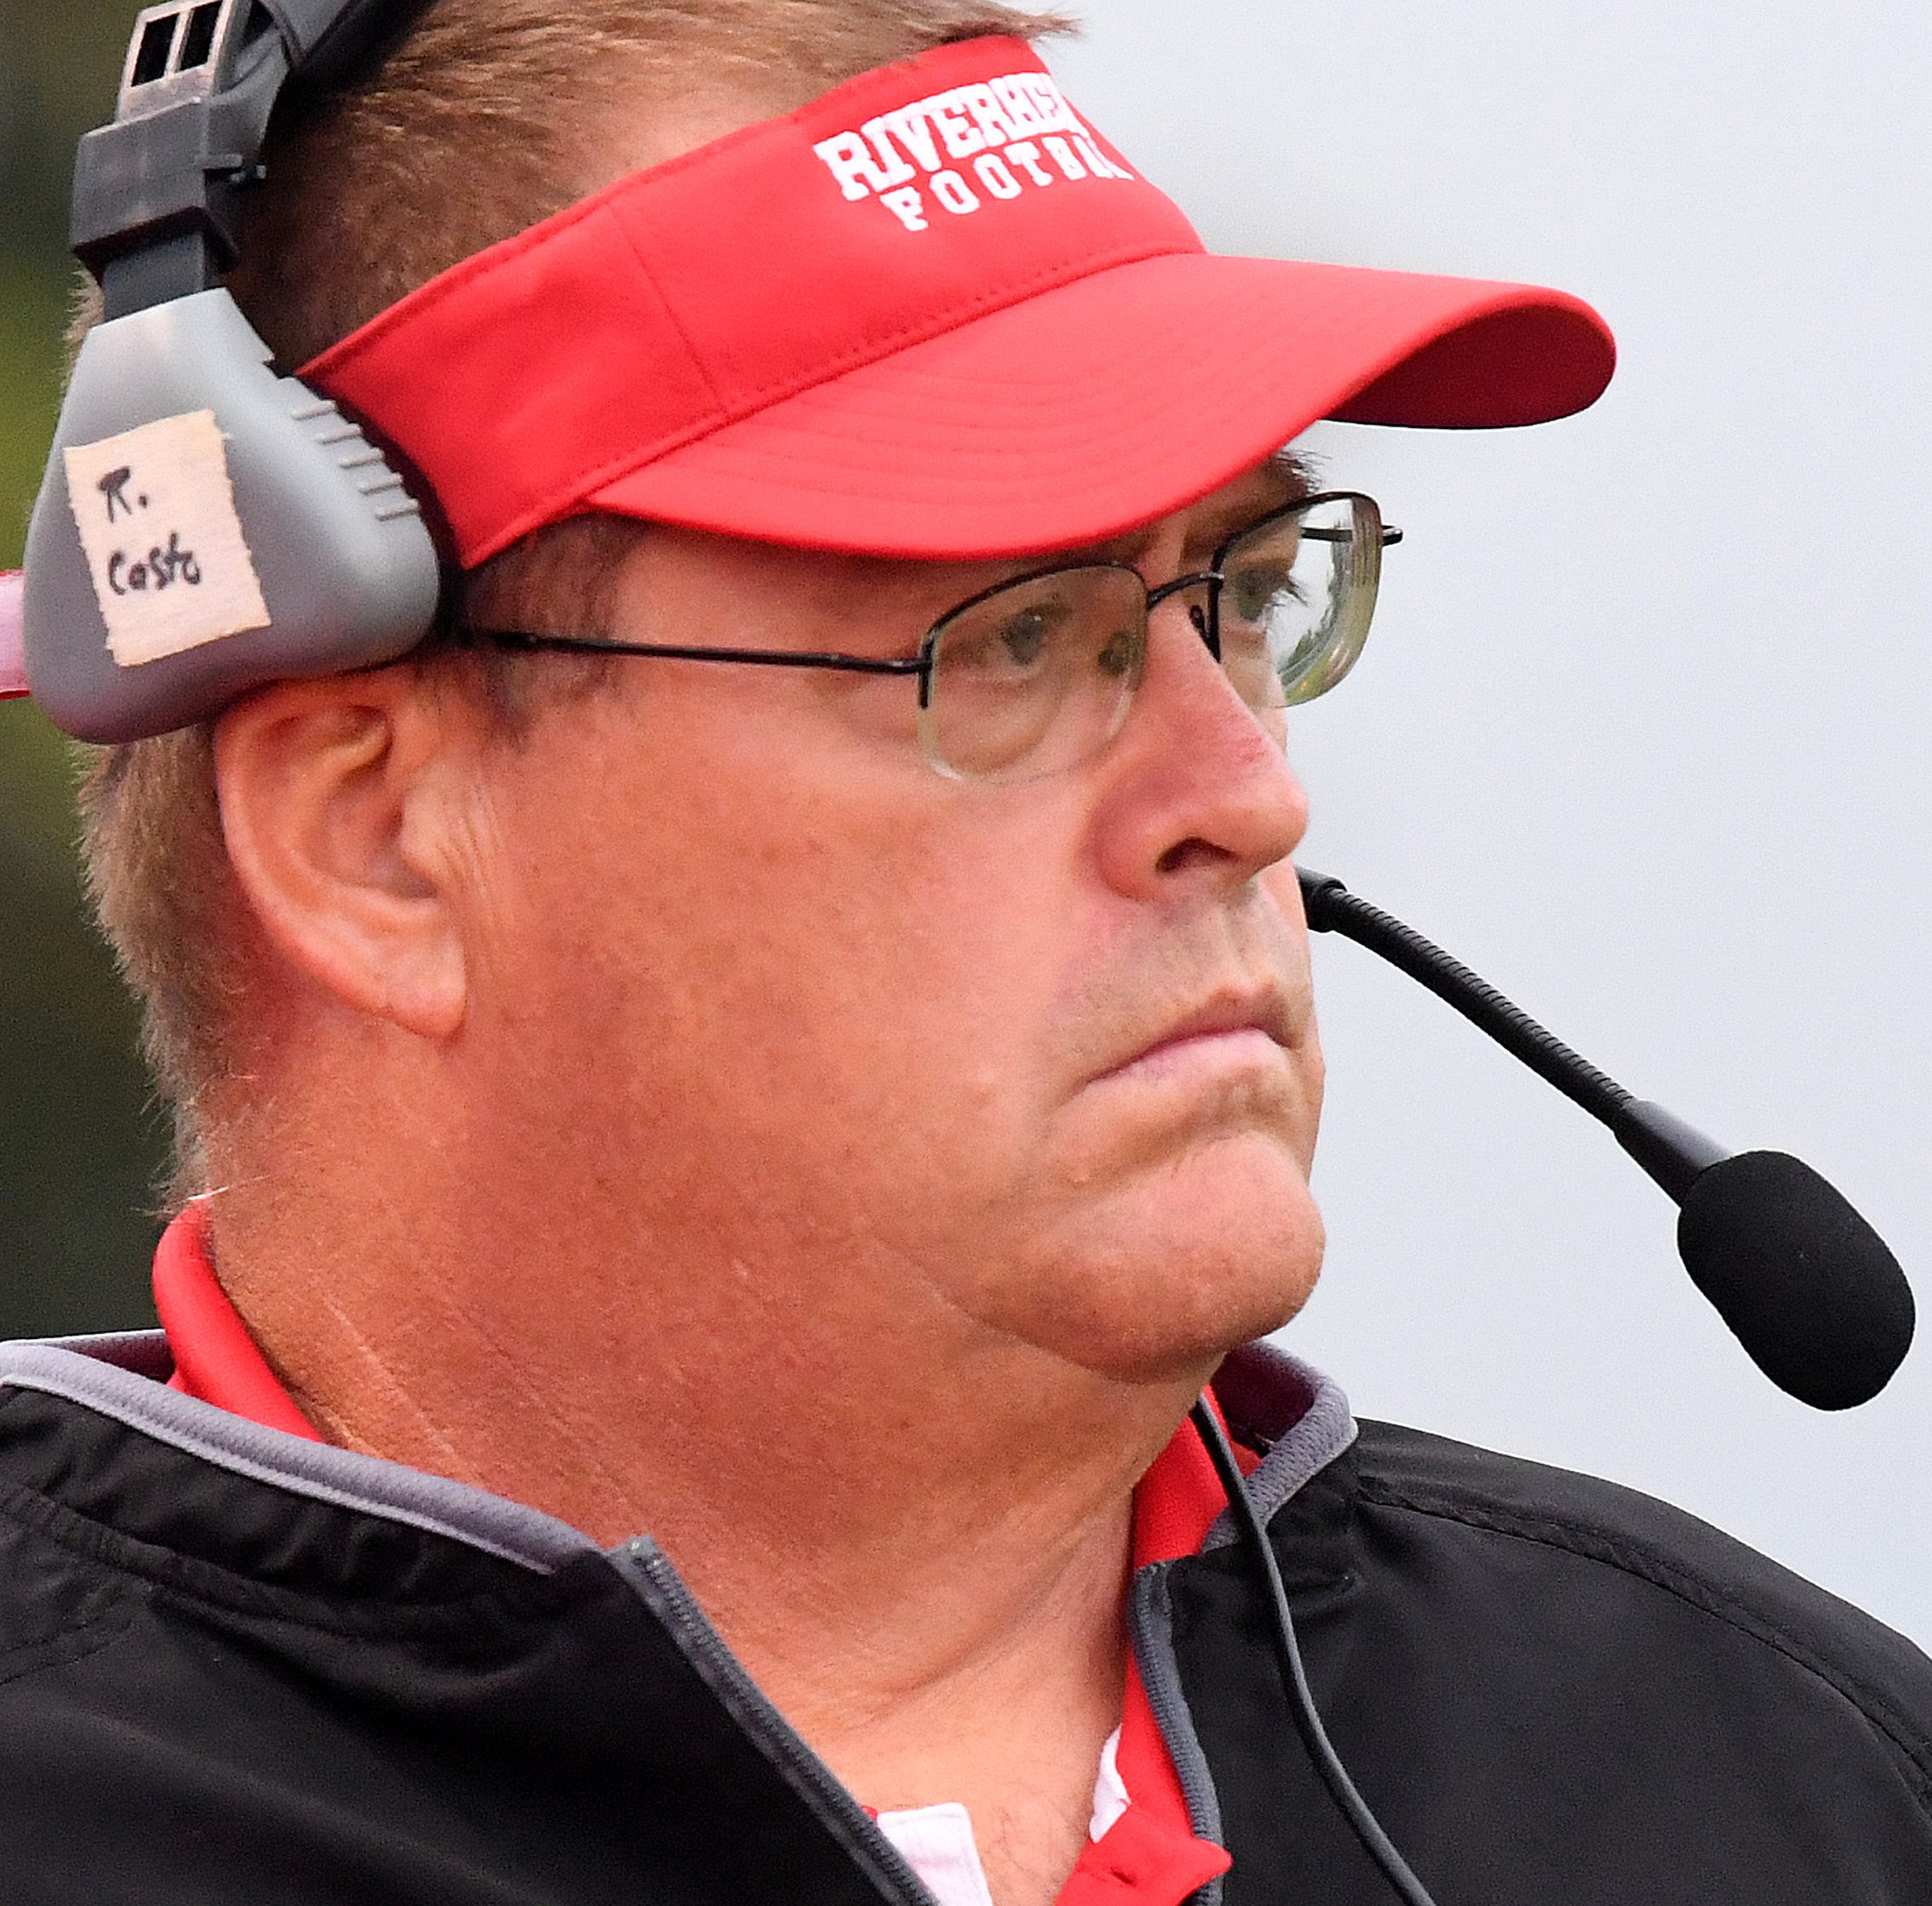 Casto, Moore lead Riverheads' 2018 Hall of Fame class